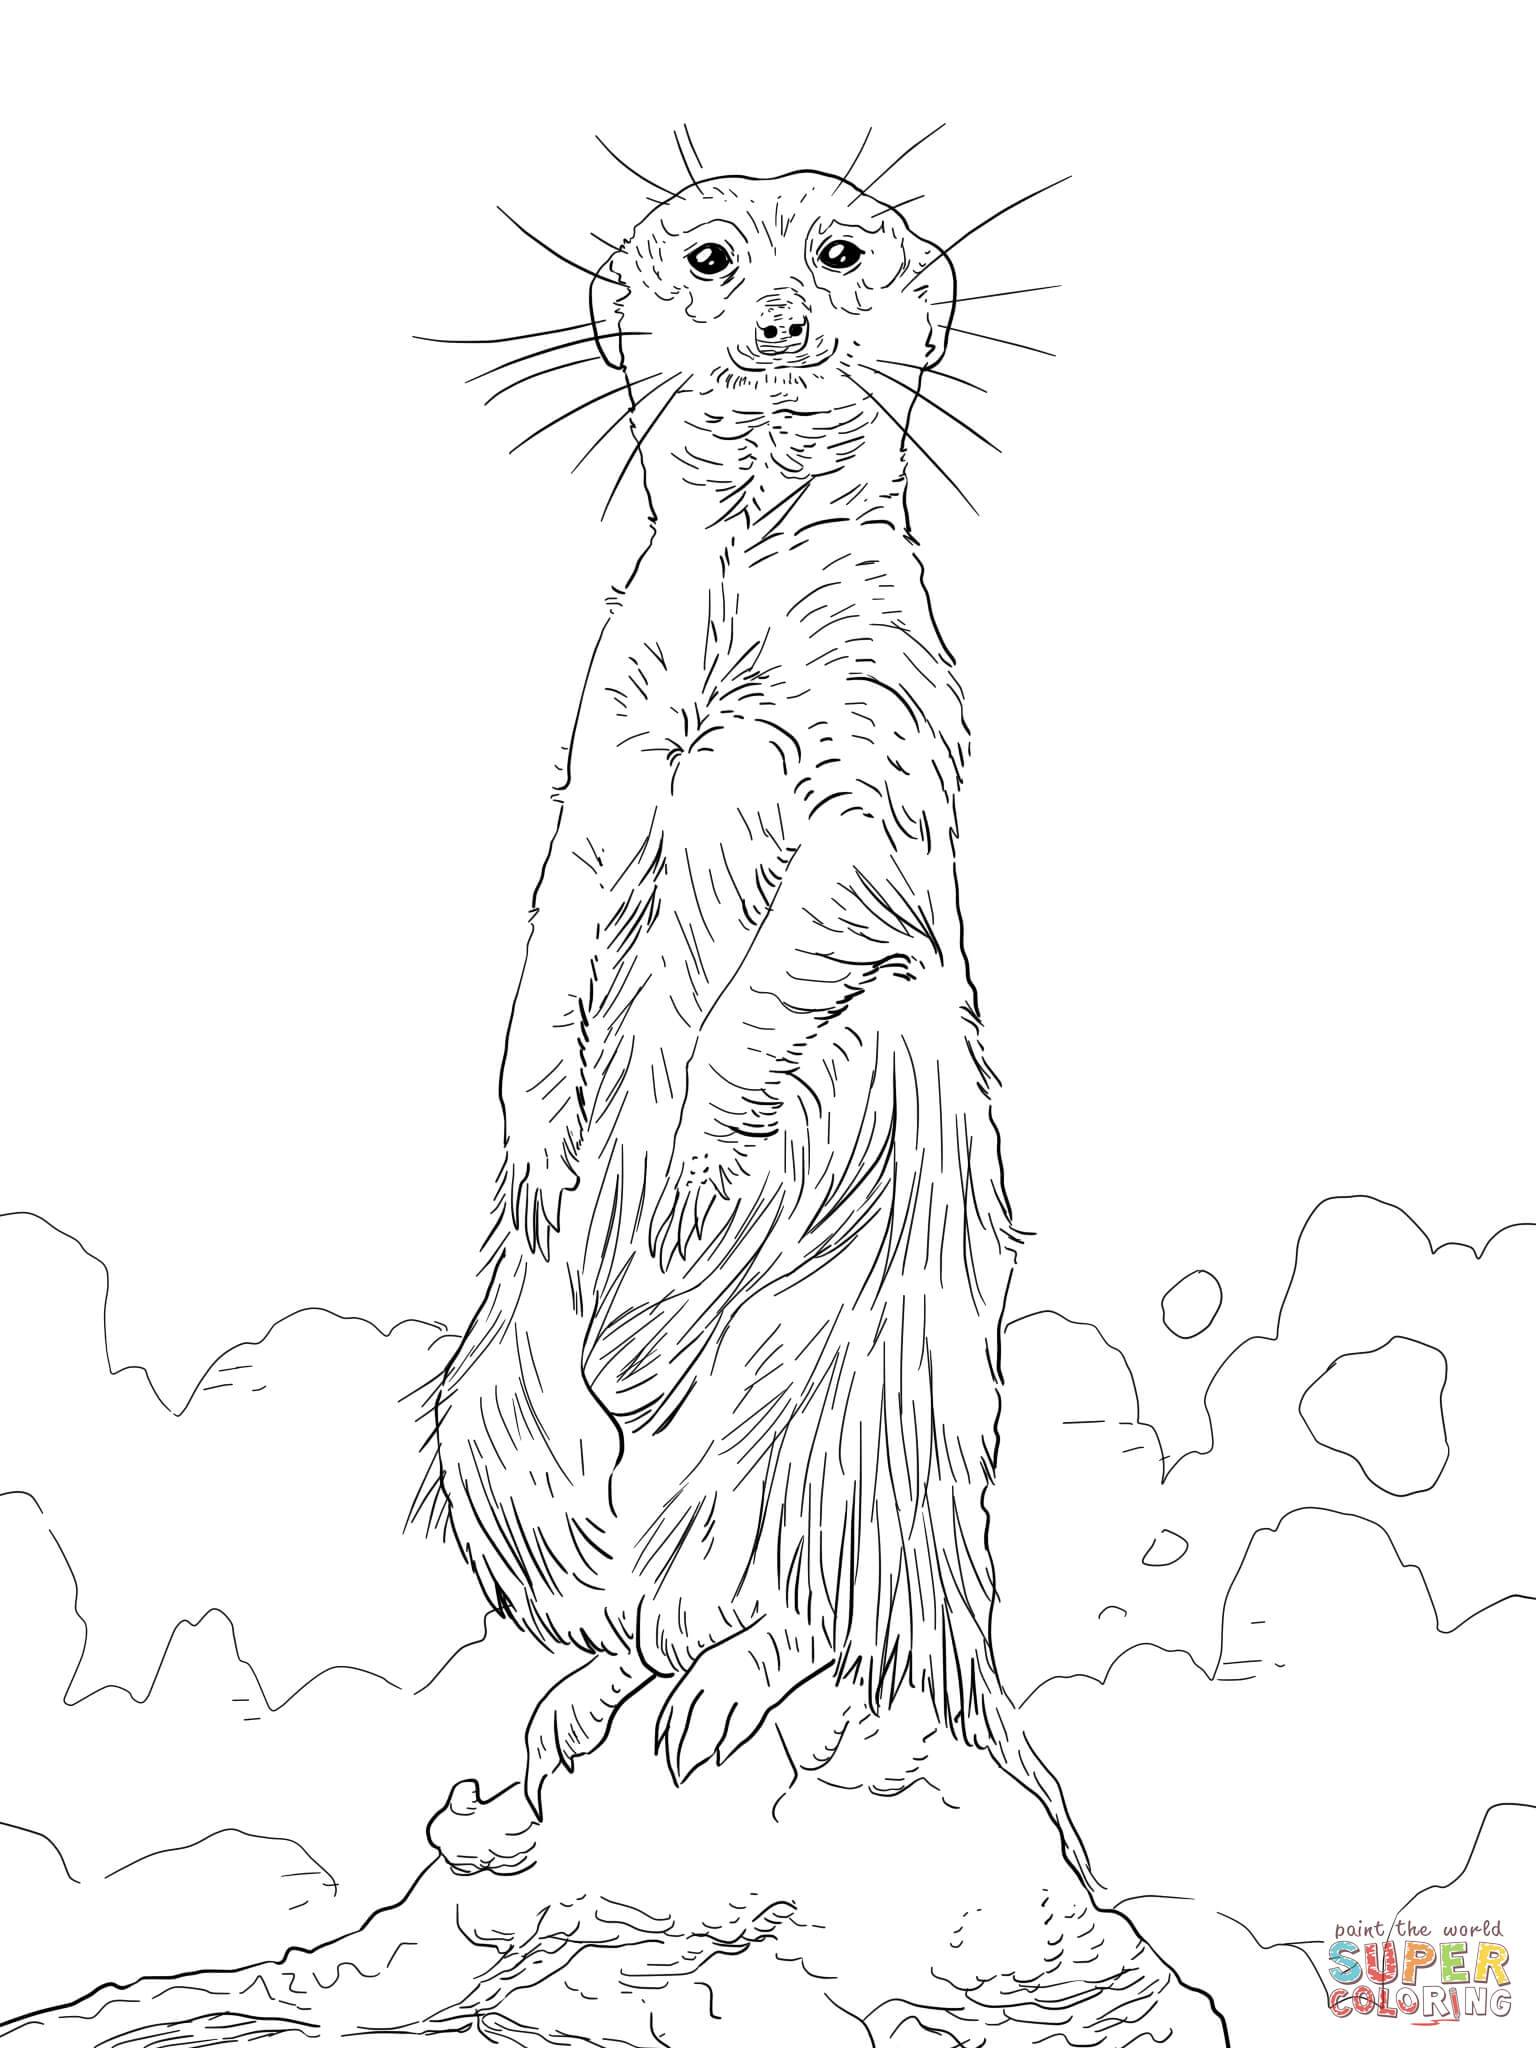 meerkat colouring pages meerkat coloring pages coloring pages meerkat colouring pages